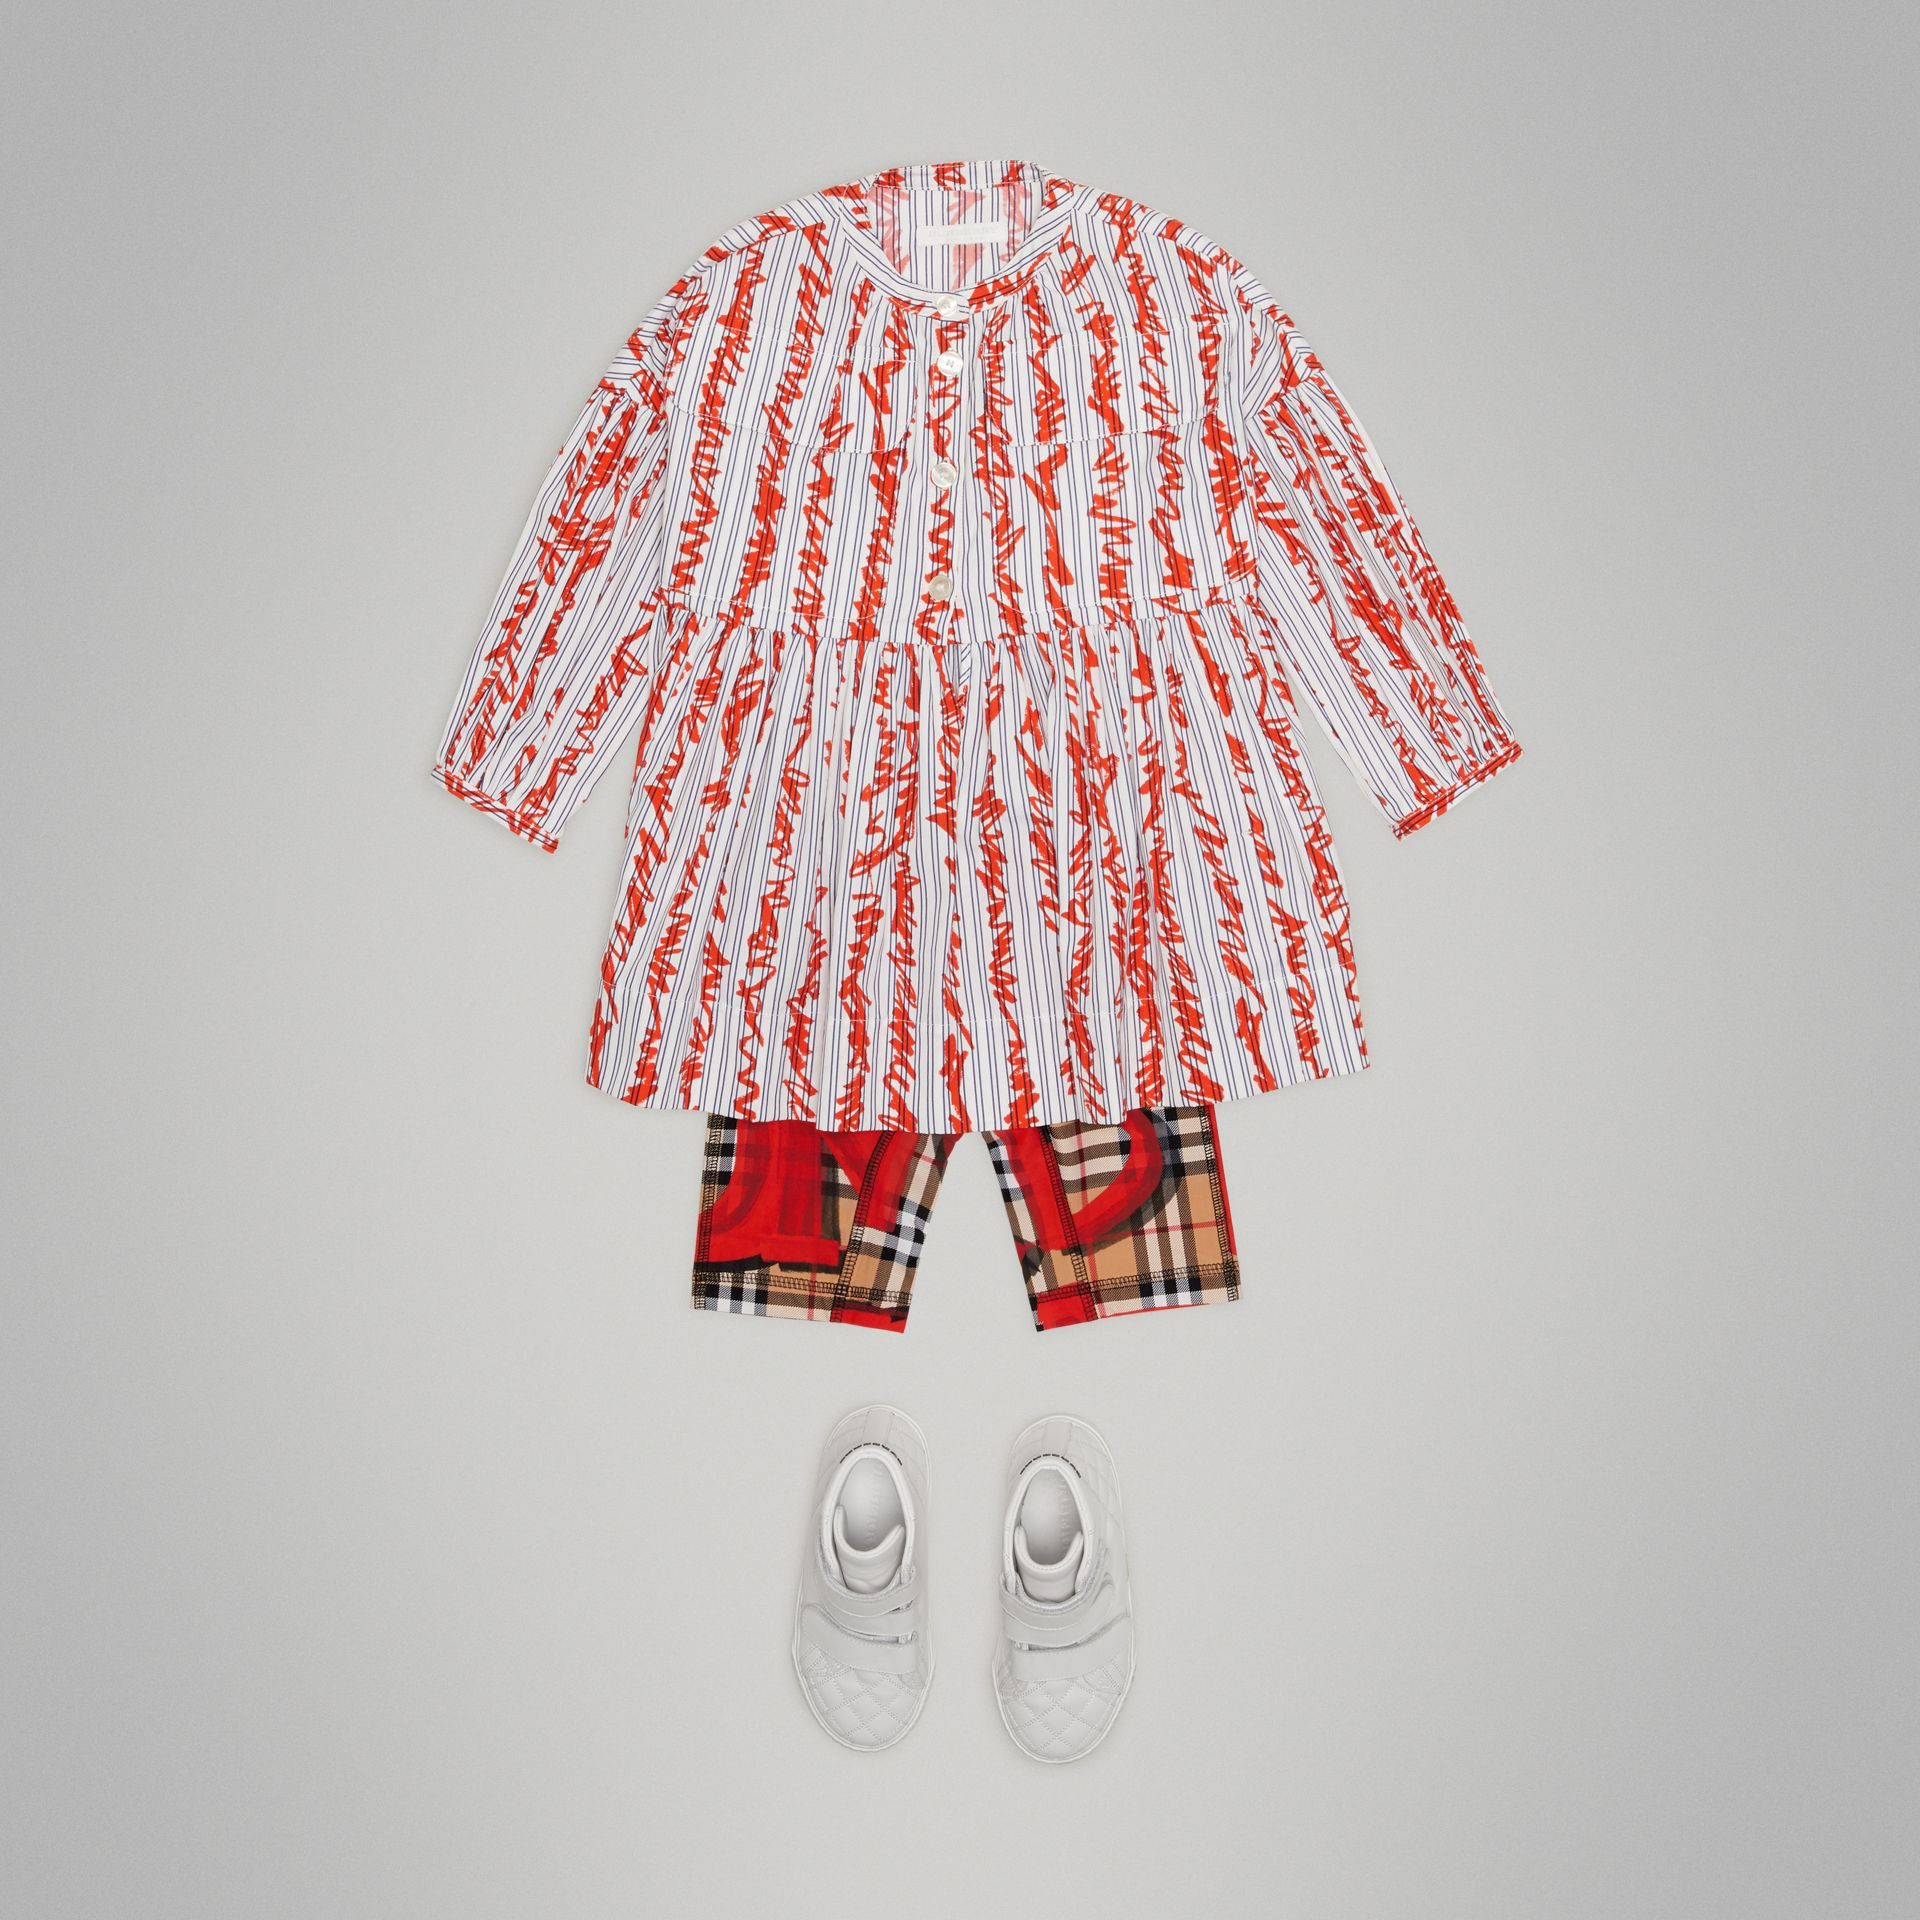 Graffiti Print Vintage Check Stretch Jersey Shorts in Bright Red | Burberry United States - gallery image 2